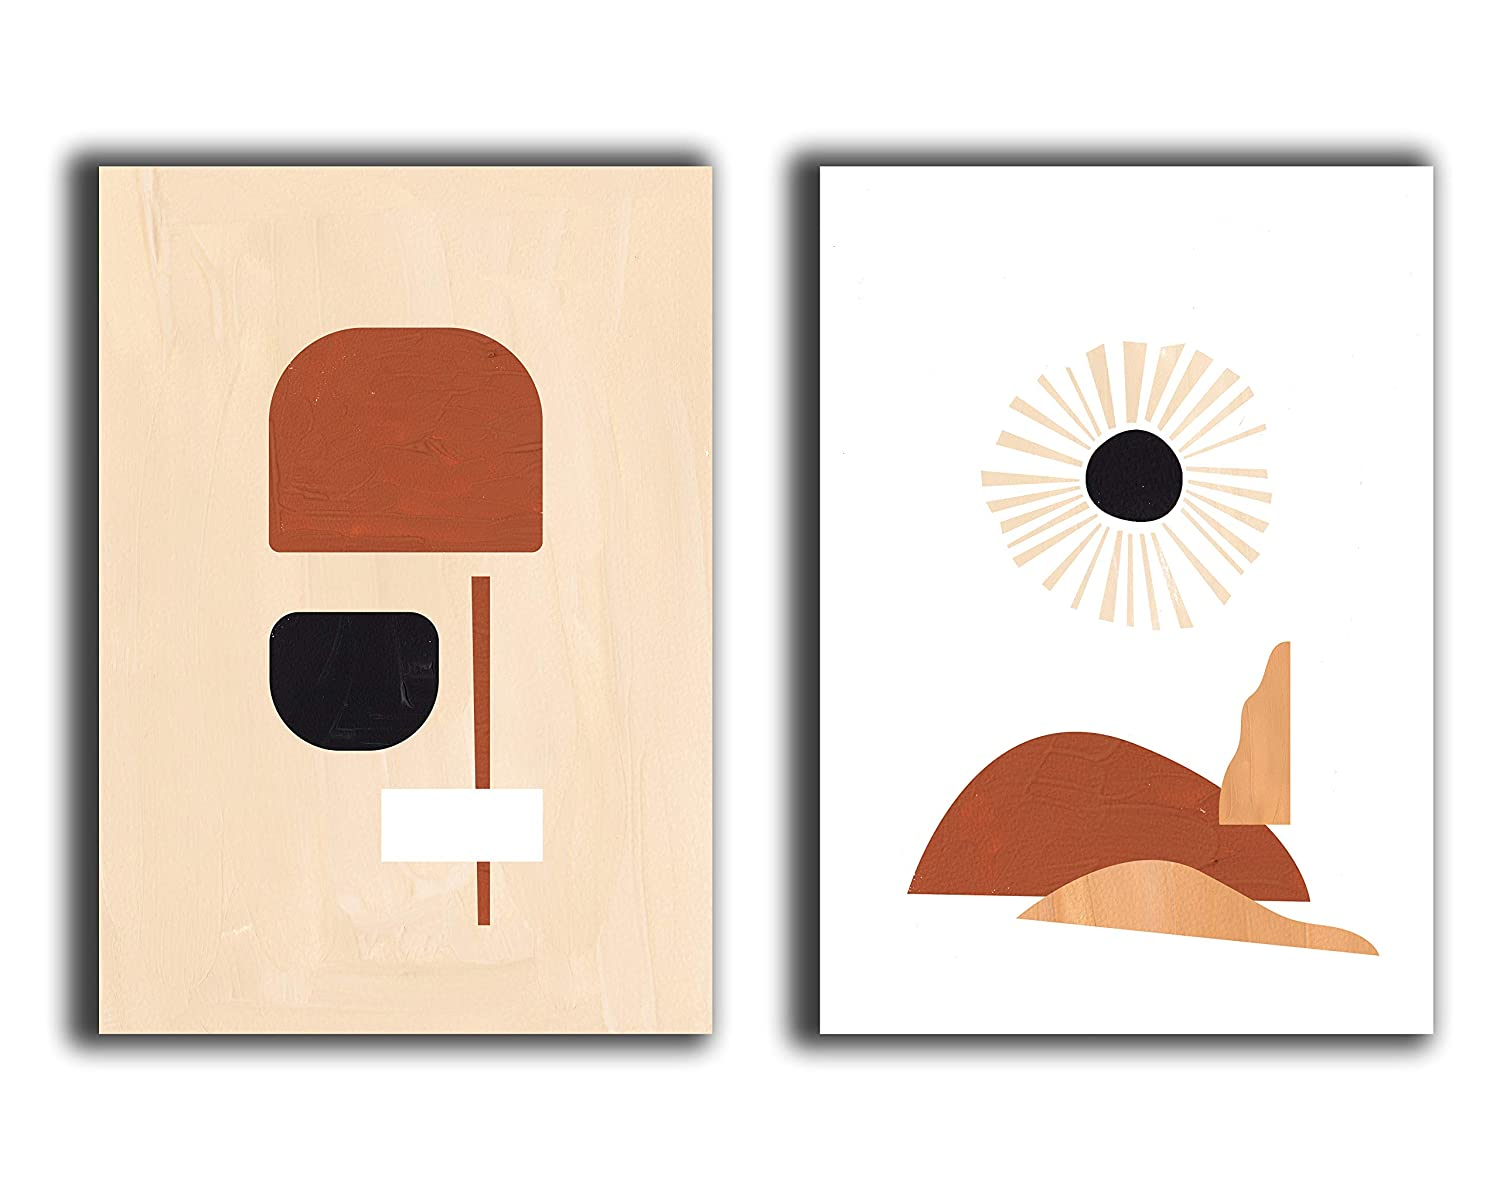 Abstract Geometric Wall Art Prints - Set of 2-11x14